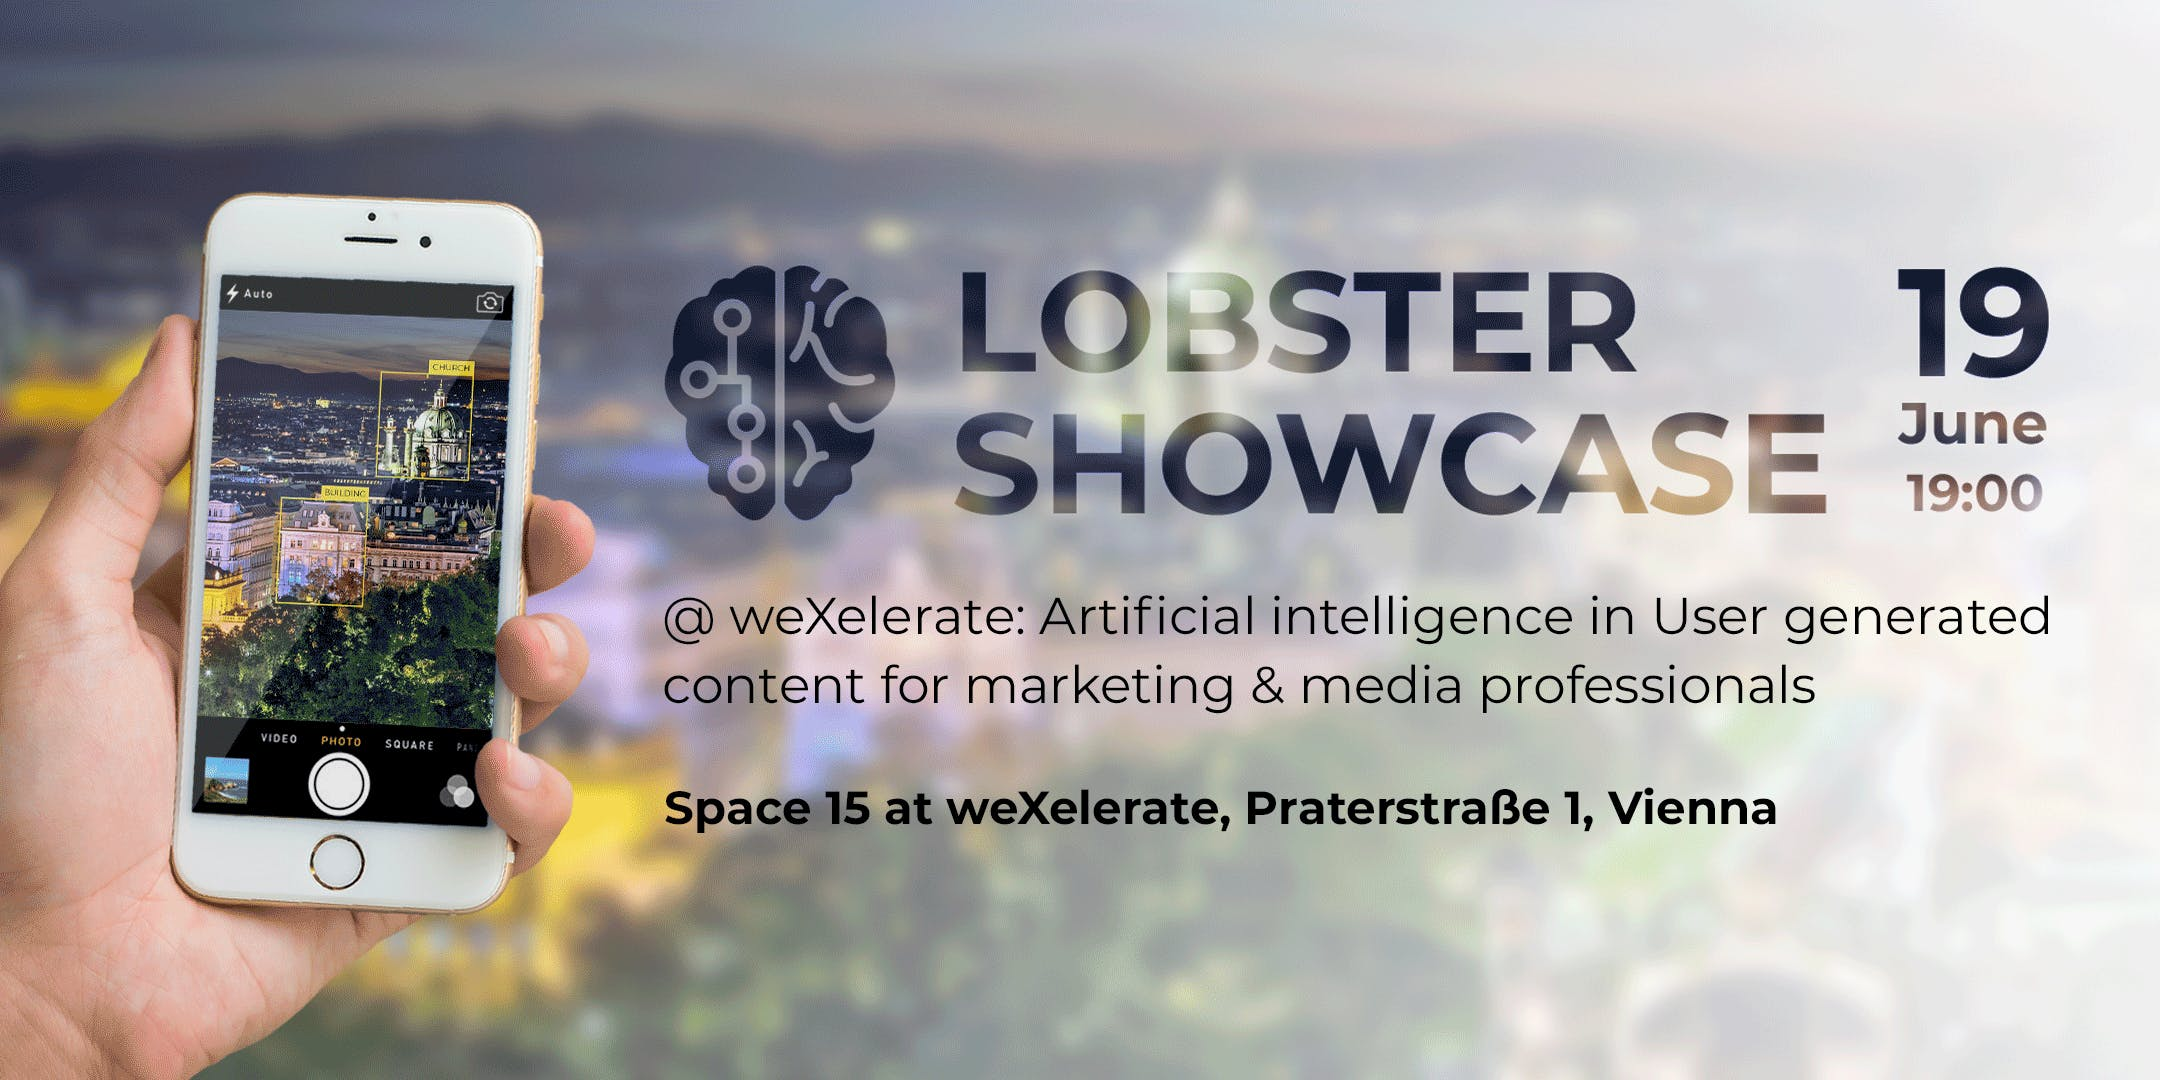 Lobster Showcase at WeXelerate: AI in UGC for